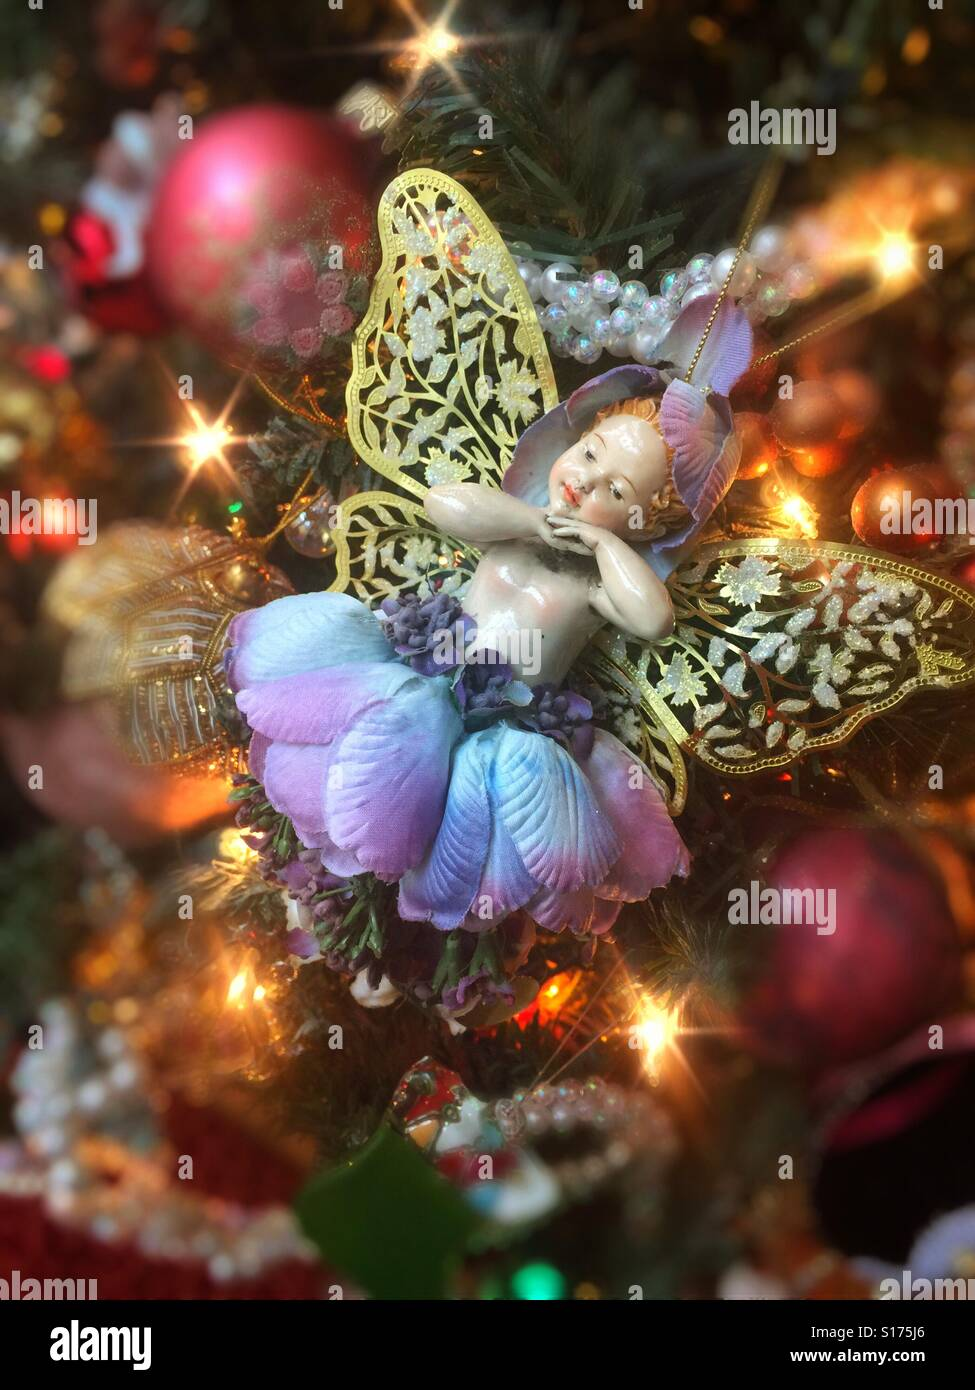 A Pretty Ballerina Angel Tree Ornament On A Colorful Christmas Tree